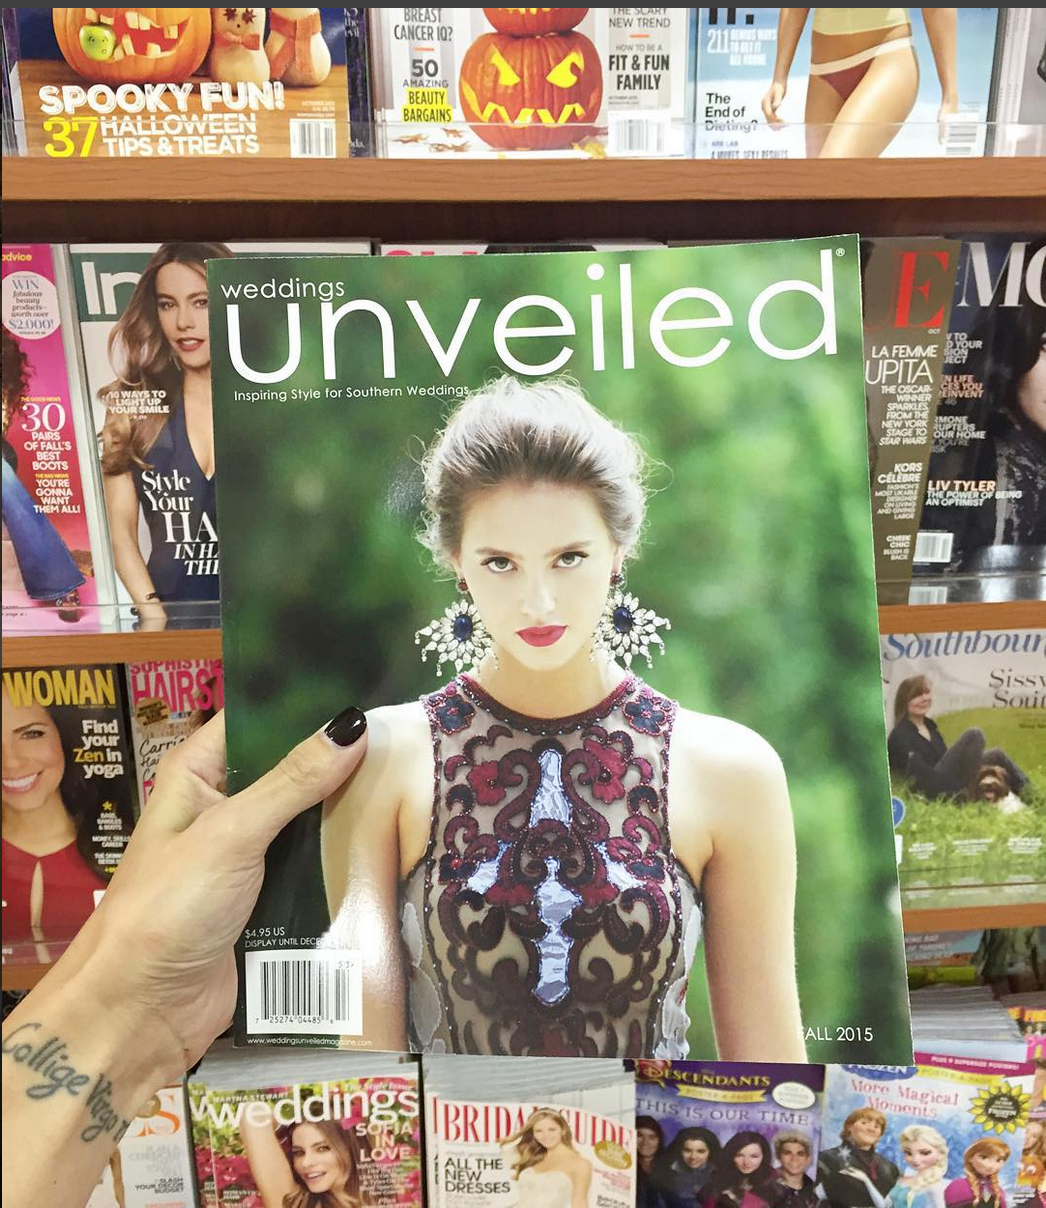 Weddings Unveiled Fall 2015 Issue